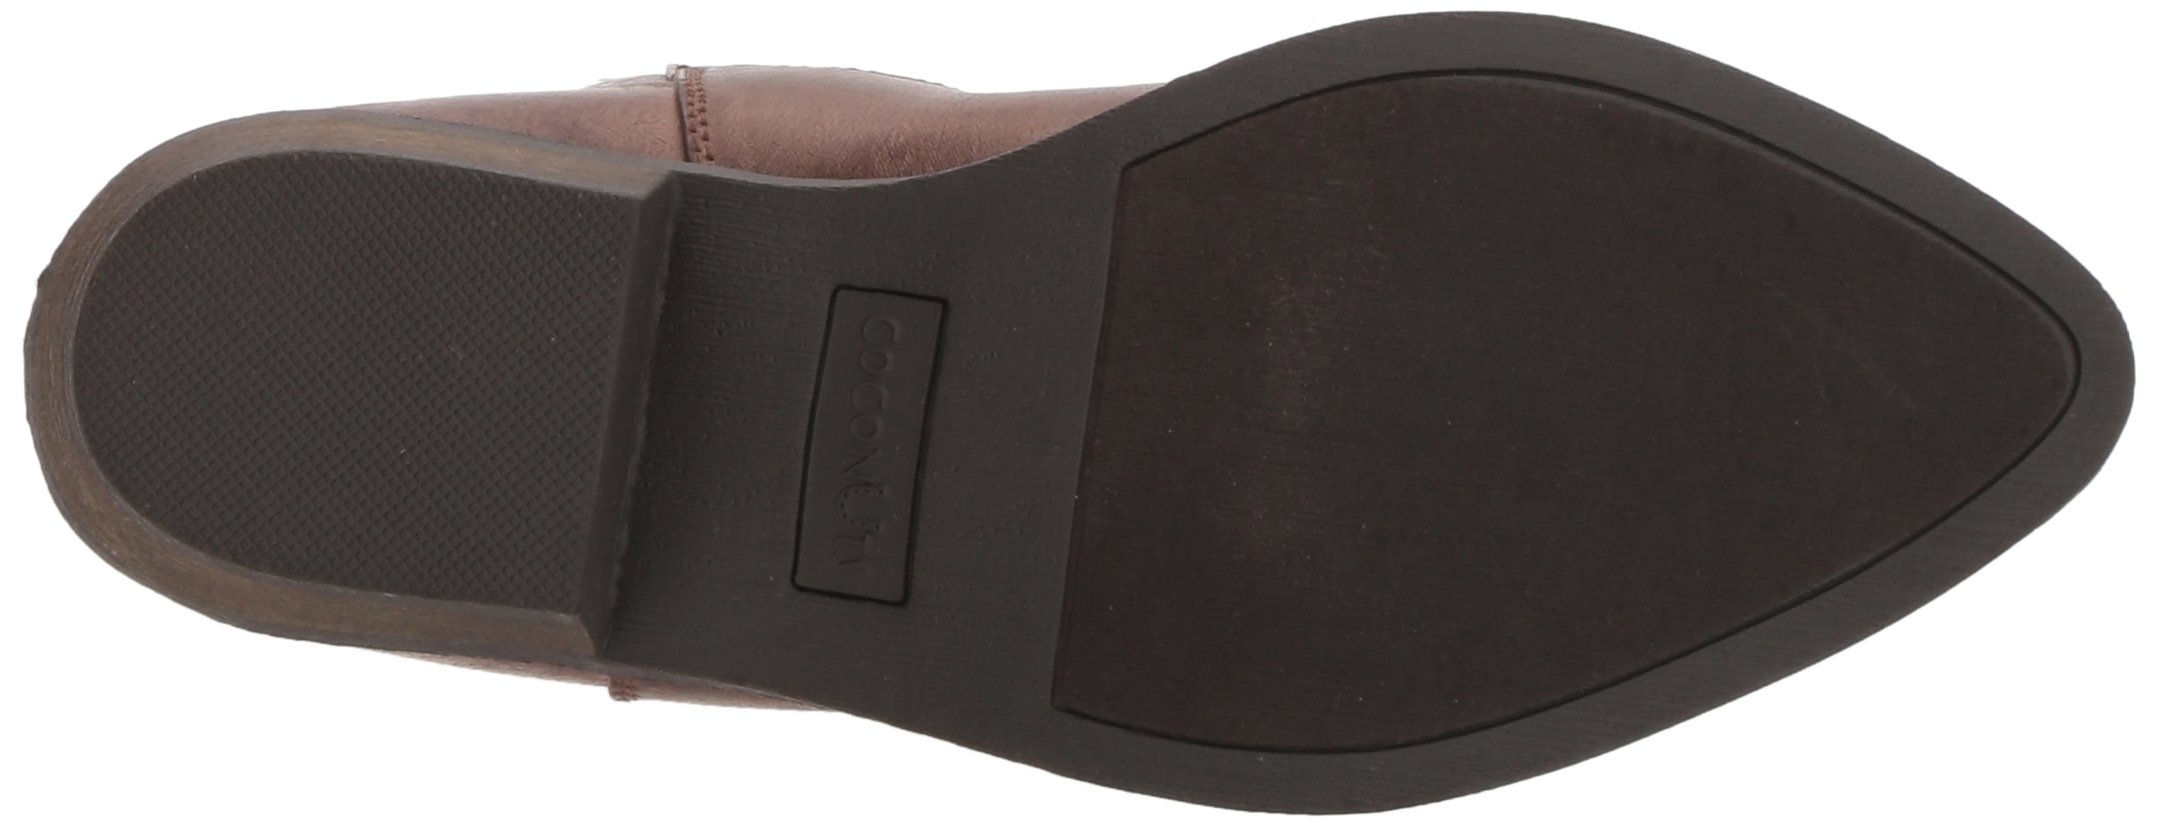 Coconuts by Matisse Women's Cimmaron Boot,Choco/Beige,10 M US by Coconuts by Matisse (Image #3)